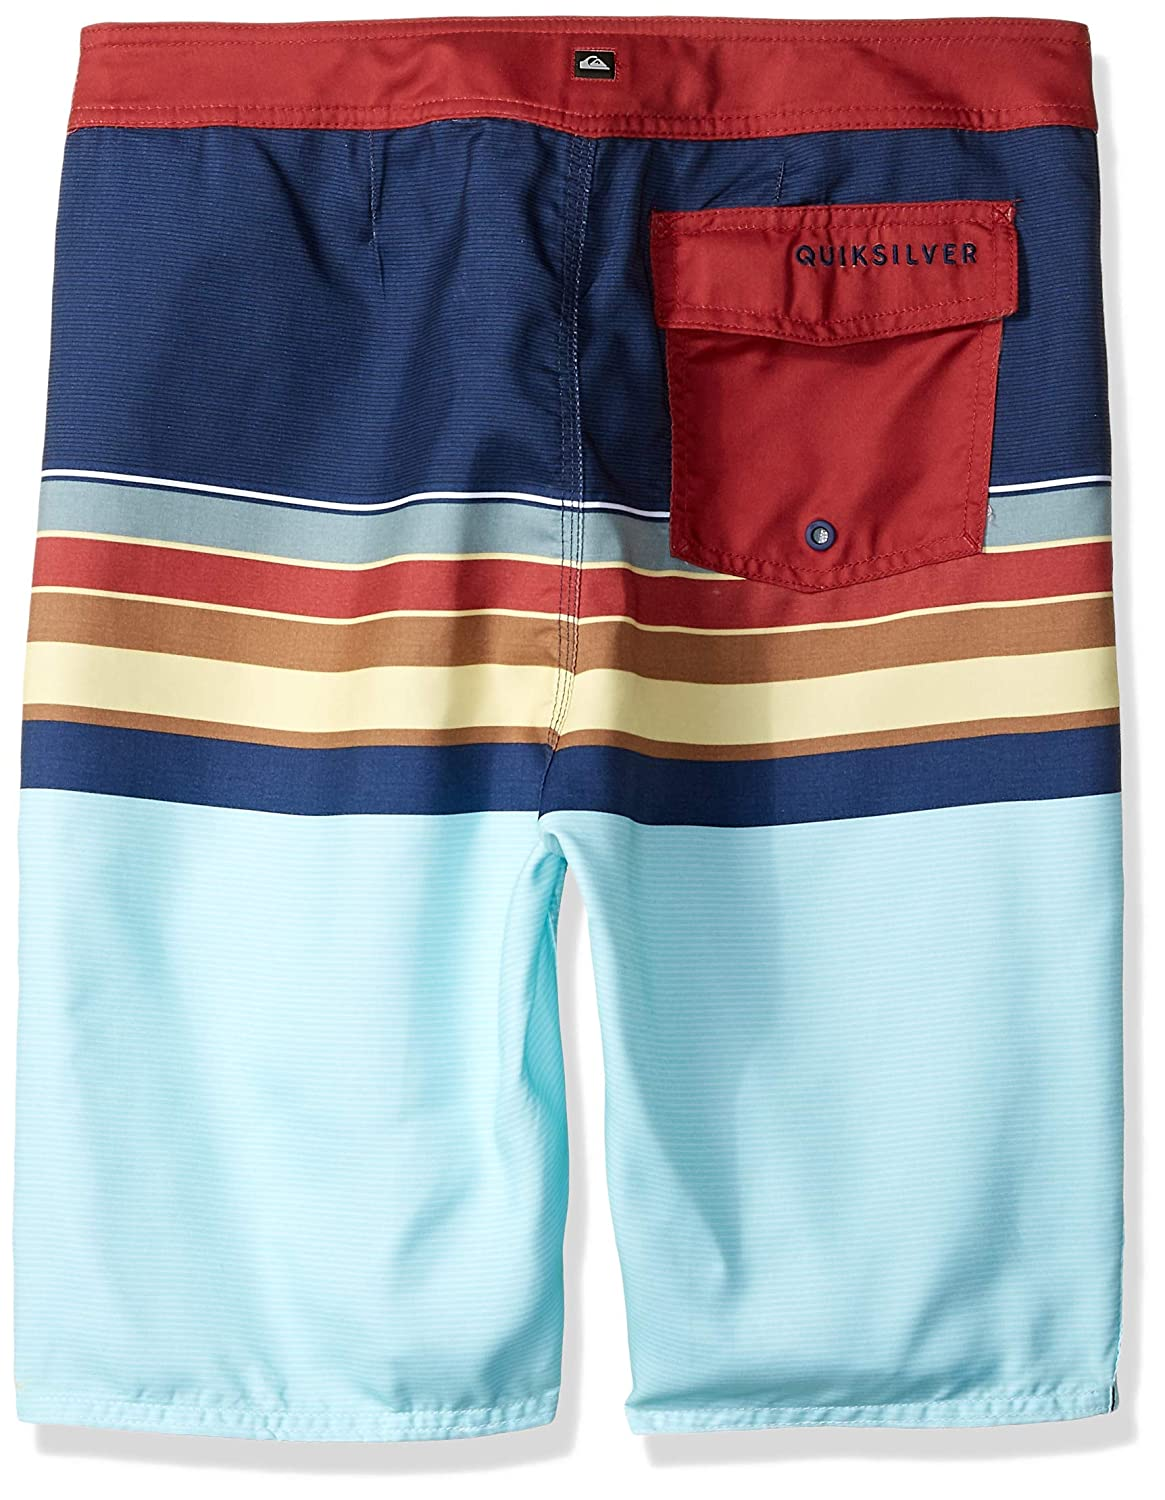 Quiksilver Boys Everyday Swell Vision Youth 18 Boardshort Swim Trunk